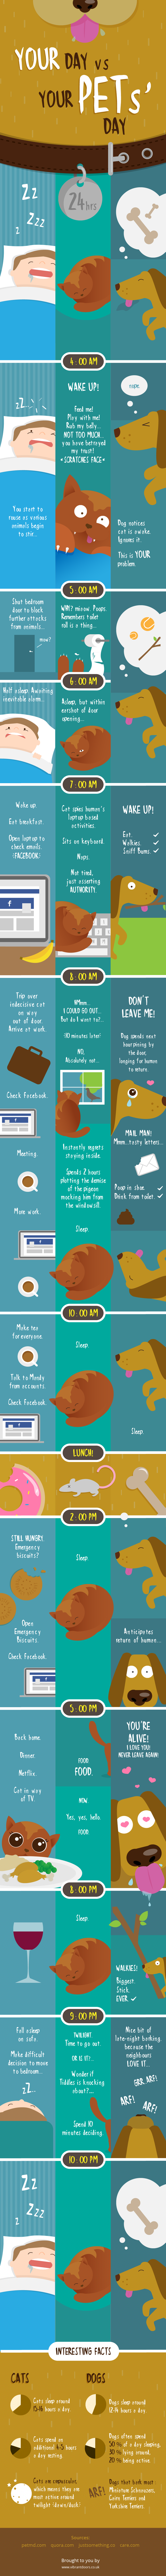 It's a Dog's Life: How Your Day Compares with Your Pet's Day - Infographic